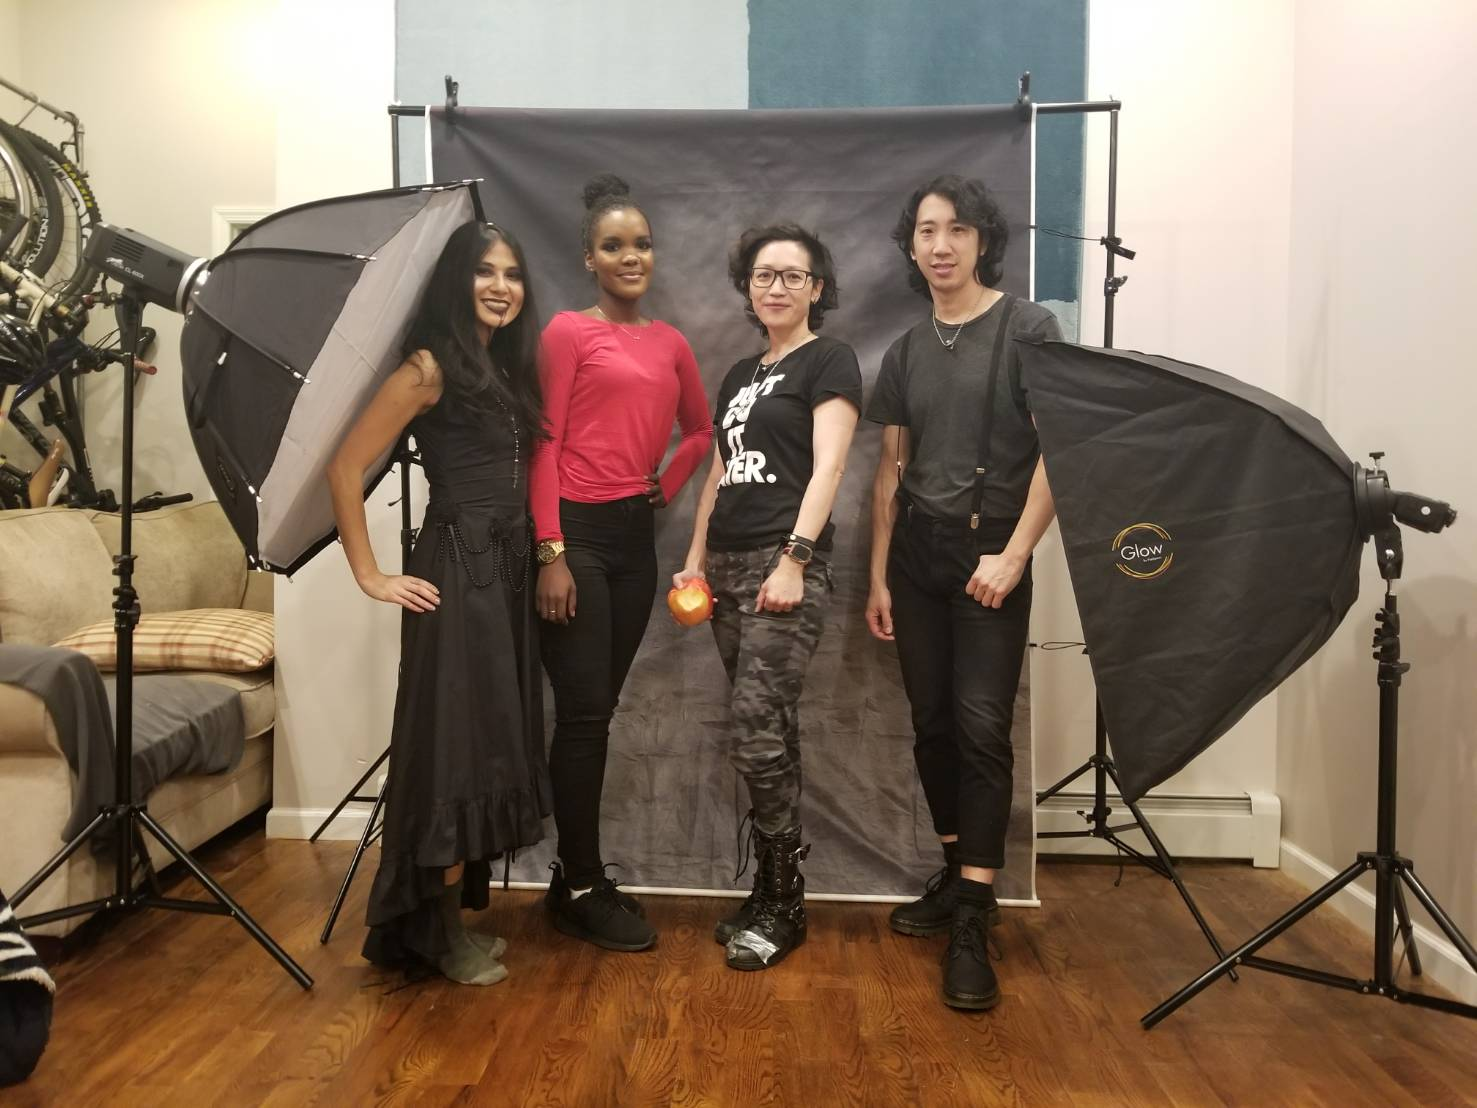 Photo Shoot Team (L-R): Elizabeth Tam, Alani Rasheed, Nephi Lim, Jon Chao